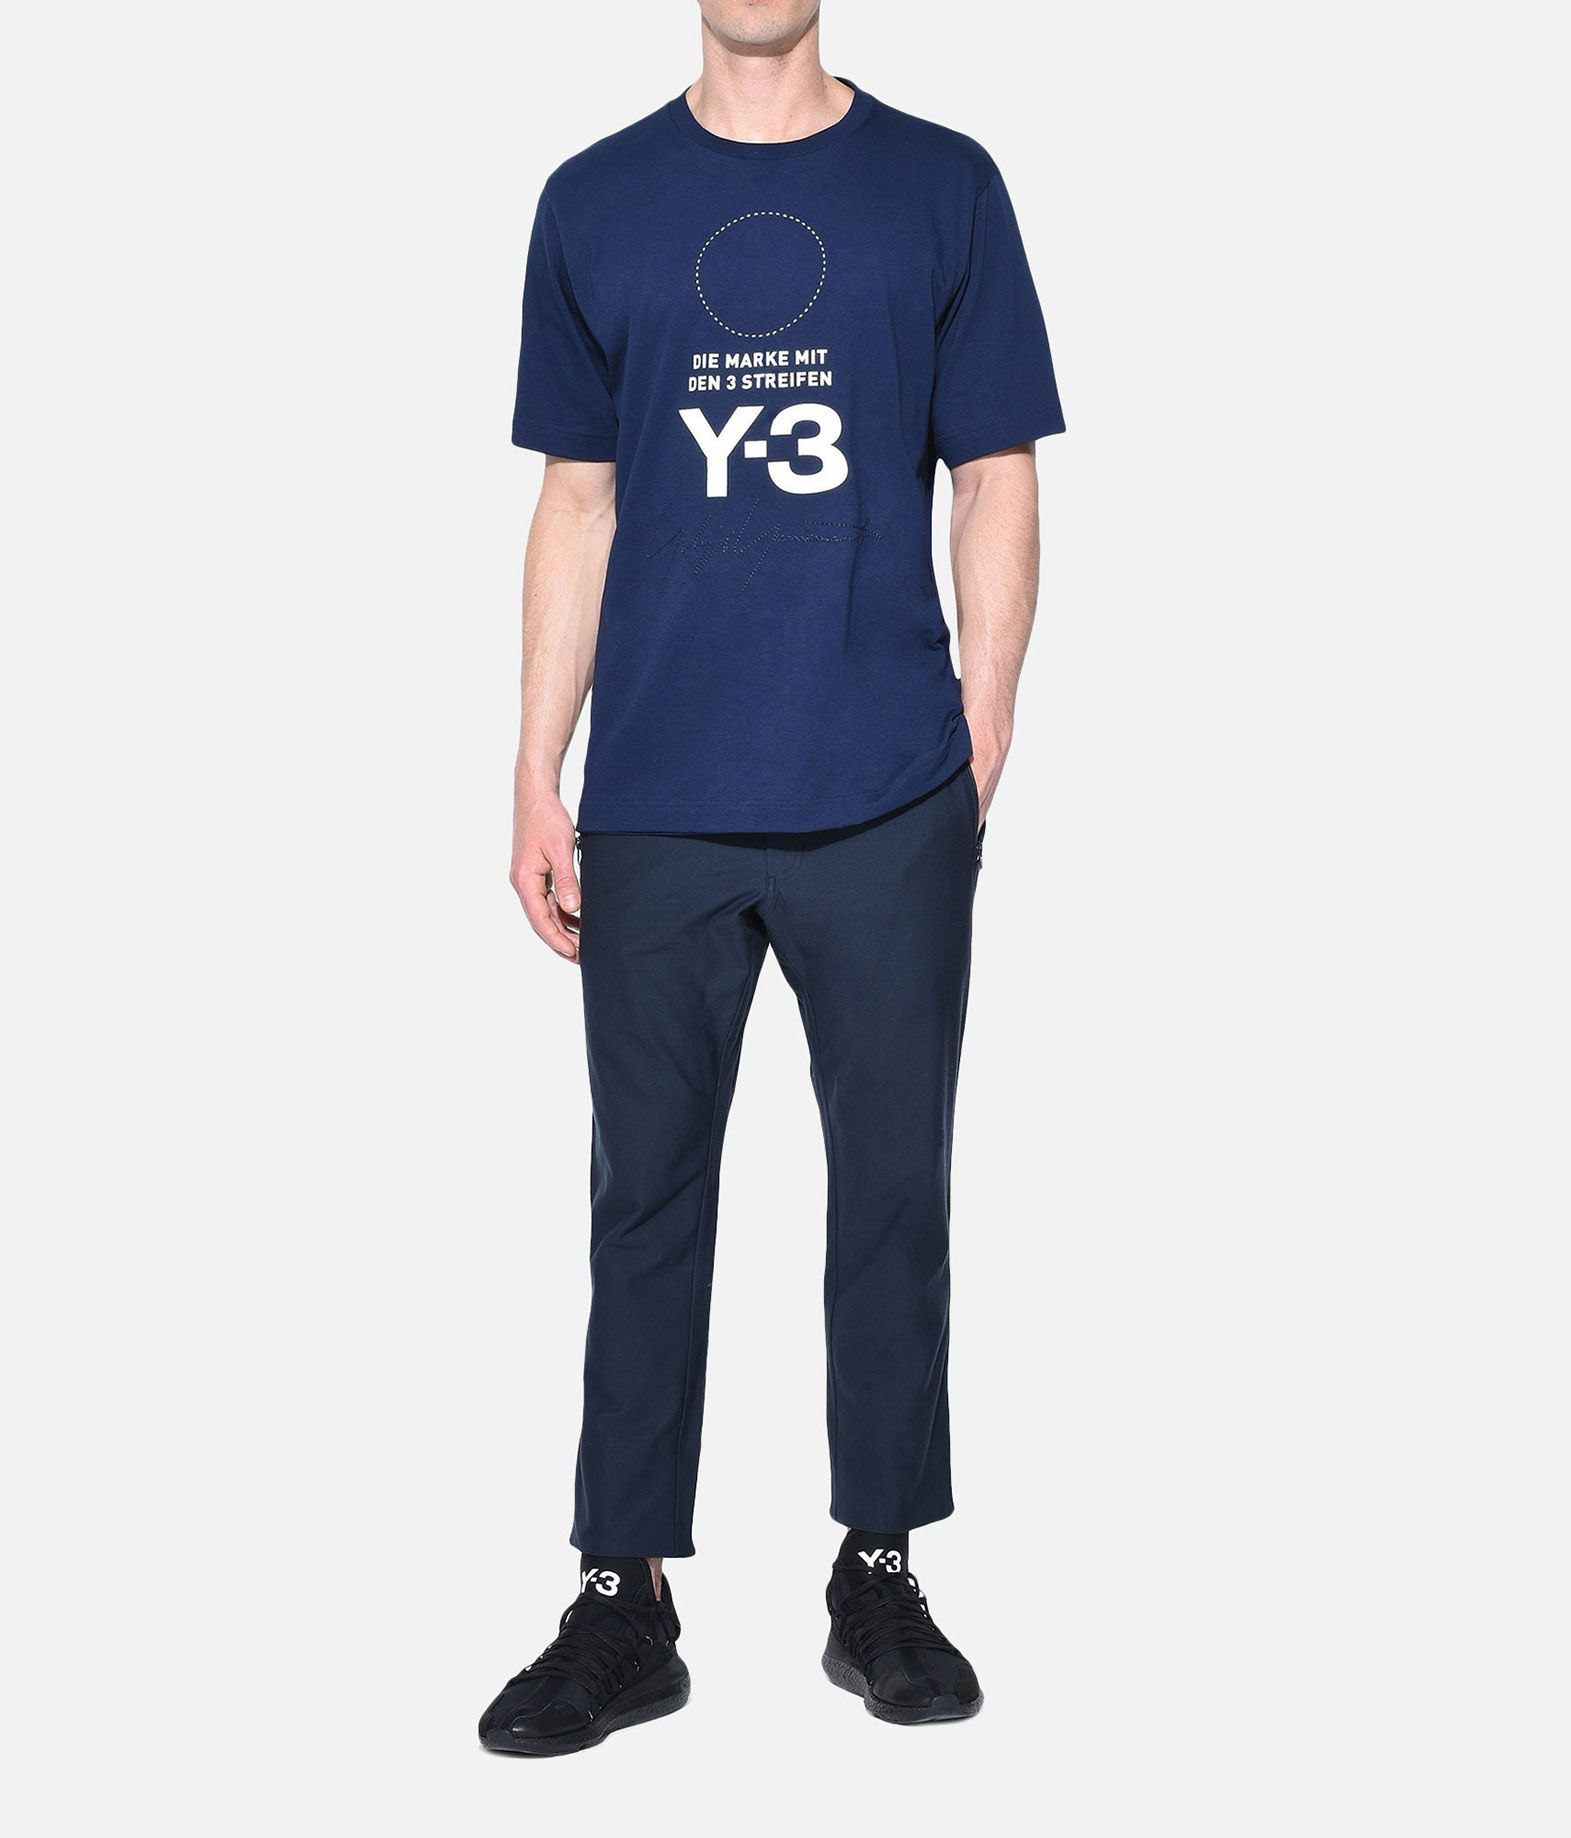 Y-3 Y-3 Twill Cropped Pants Cropped pant Man a